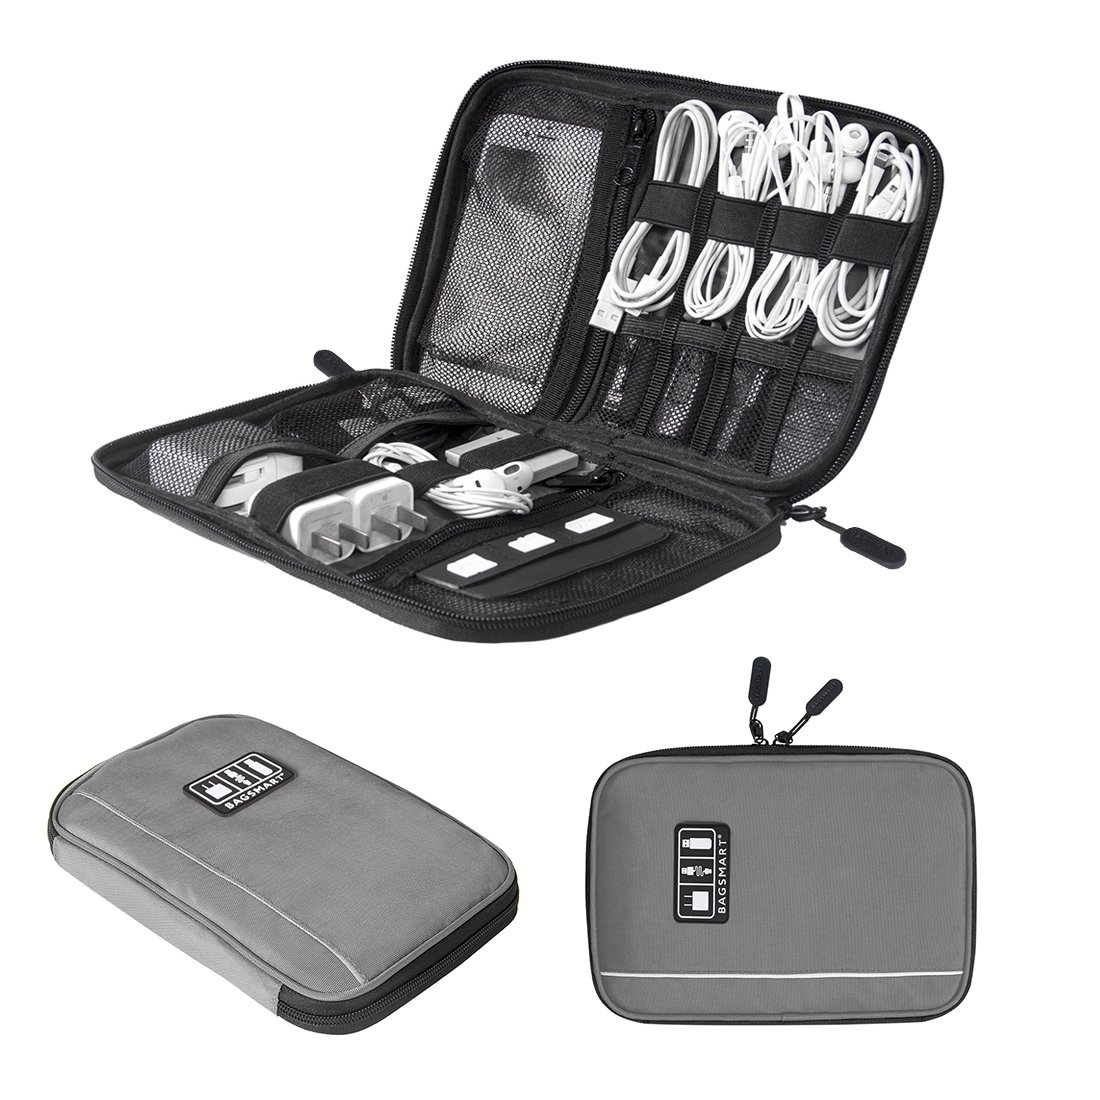 Travel Universal Cable Organizer Electronics Accessories Cases For Various USB, Phone, Charger and Cable, Grey